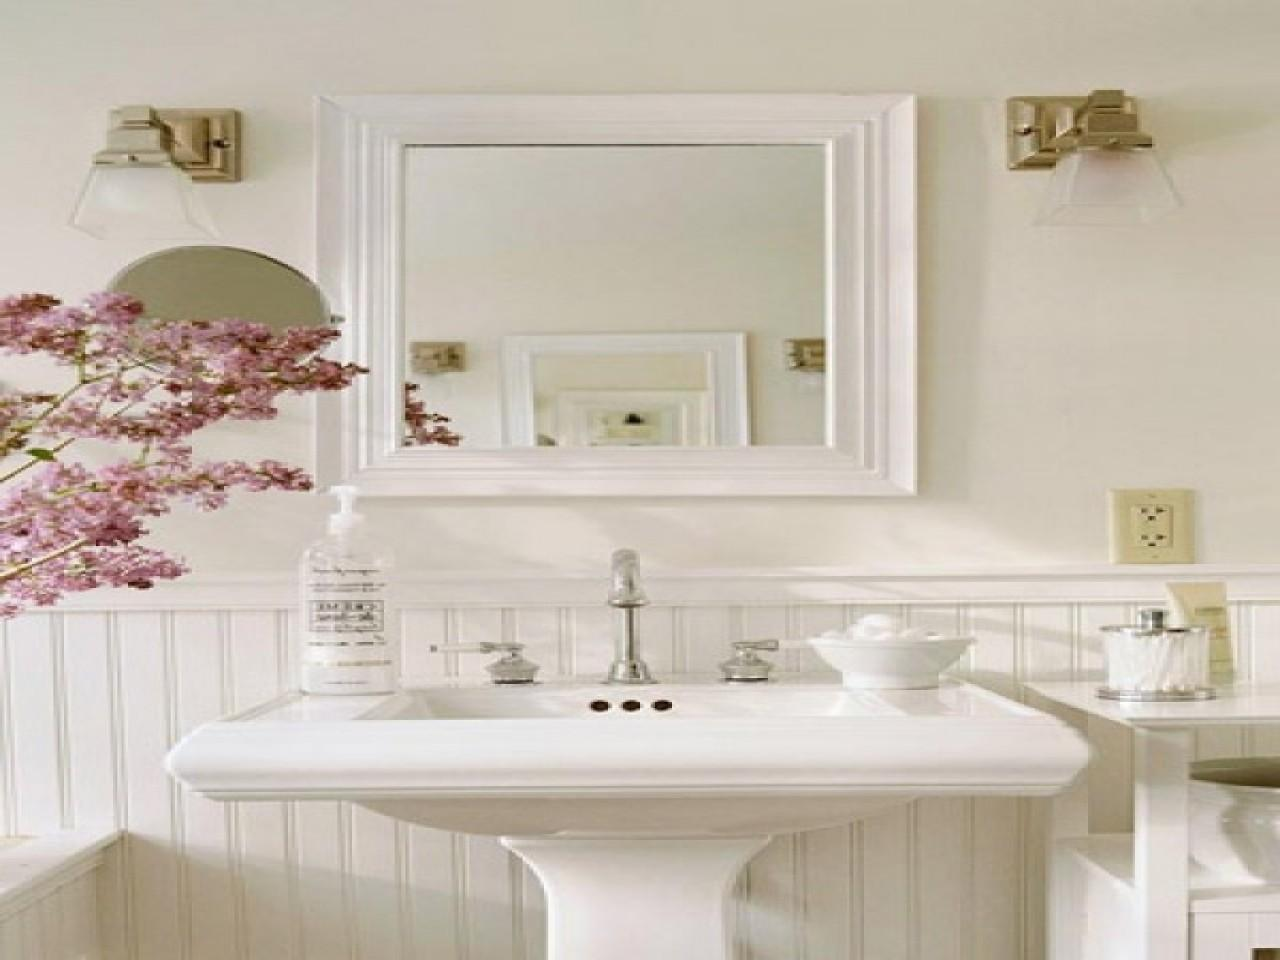 Extra Long Desk Table, Wonderful French Country Bathroom Decor That Will Steal The Show Trends For 2020 Photo Gallery Decoratorist